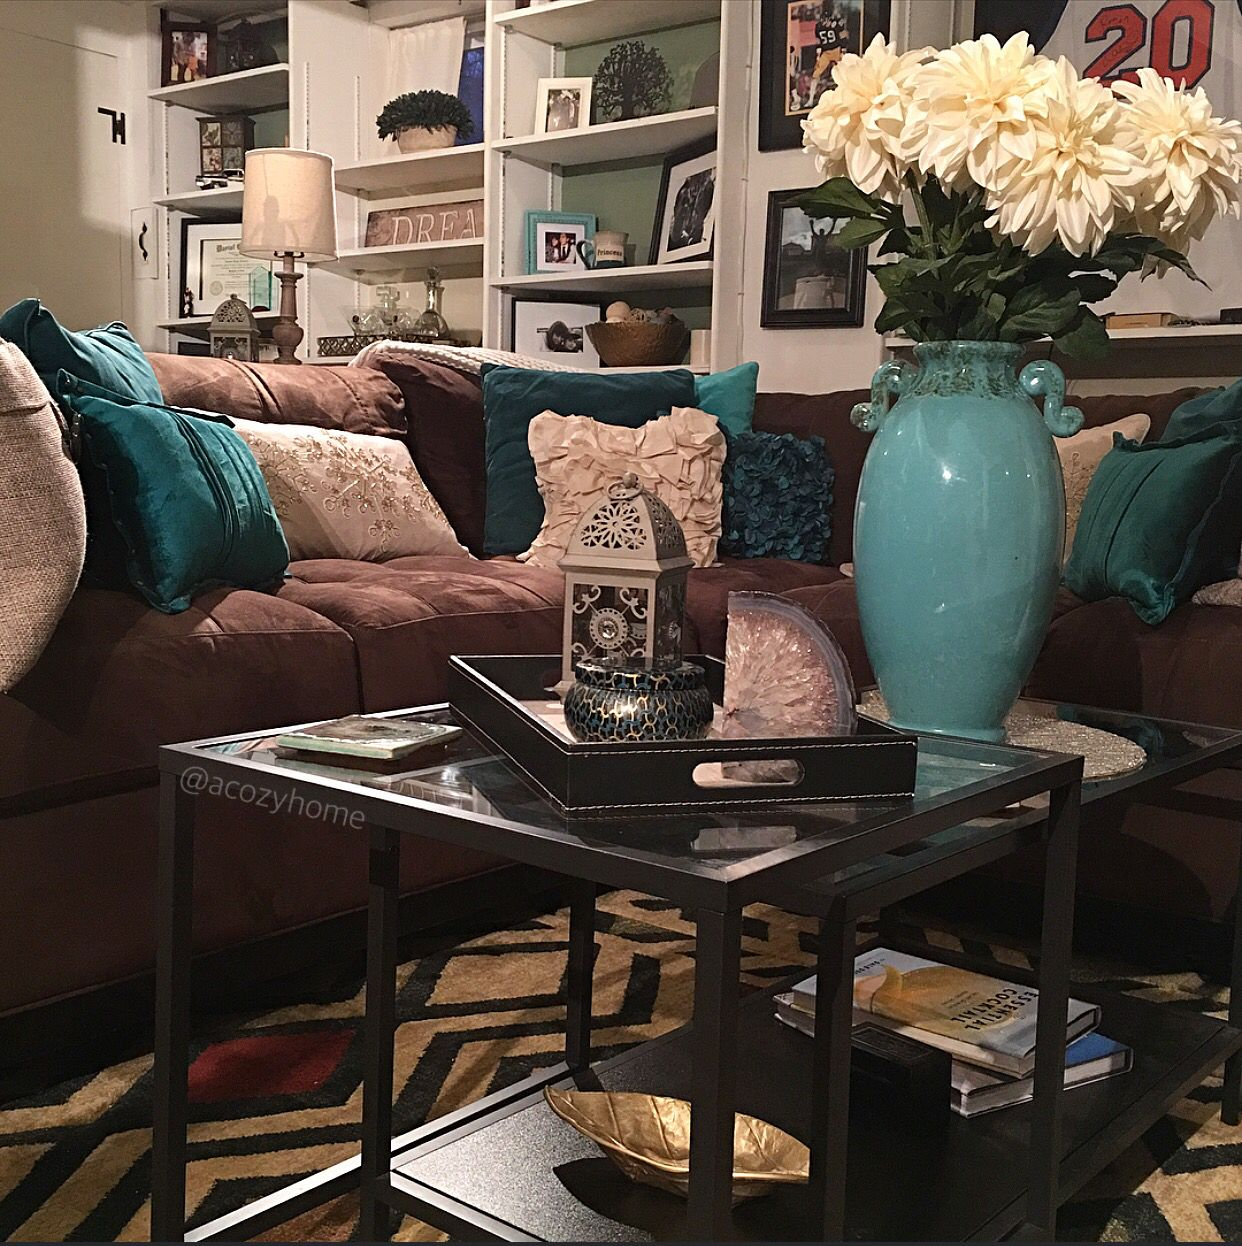 Turquoise And Brown Living Room Decorating Ideas Interior Design For With Fireplace Cozy Couch Teal Accents Built In Shelves Ikea Nesting Table Acozyhome